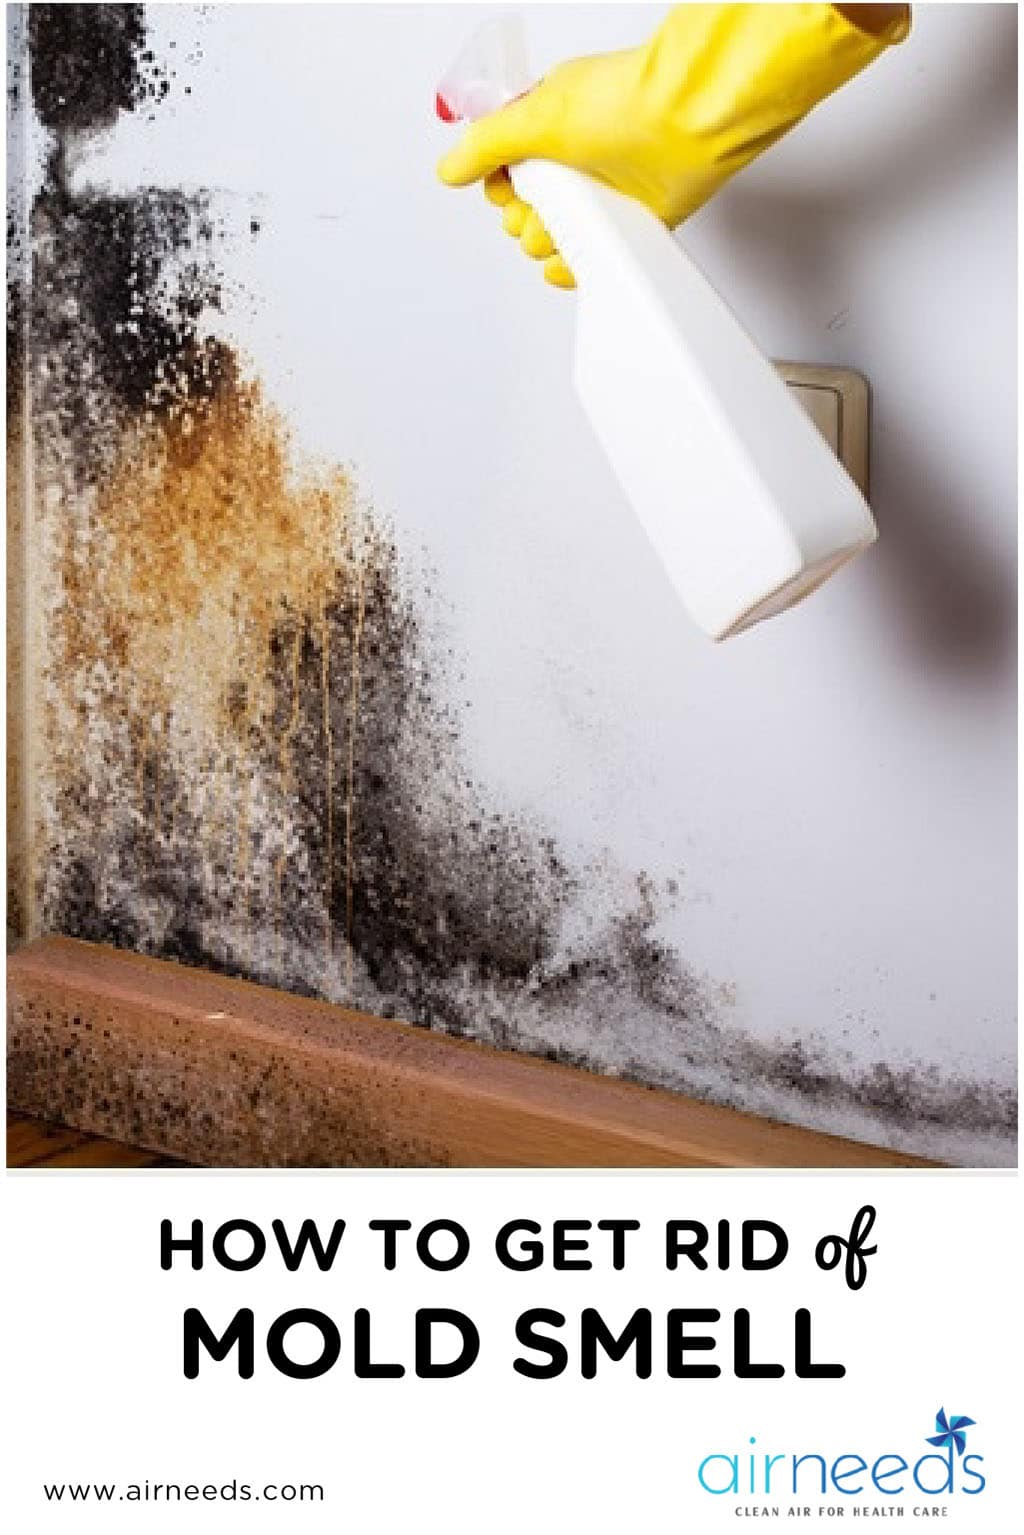 4 tips on how to get rid of mold smell in the house airneeds. Black Bedroom Furniture Sets. Home Design Ideas